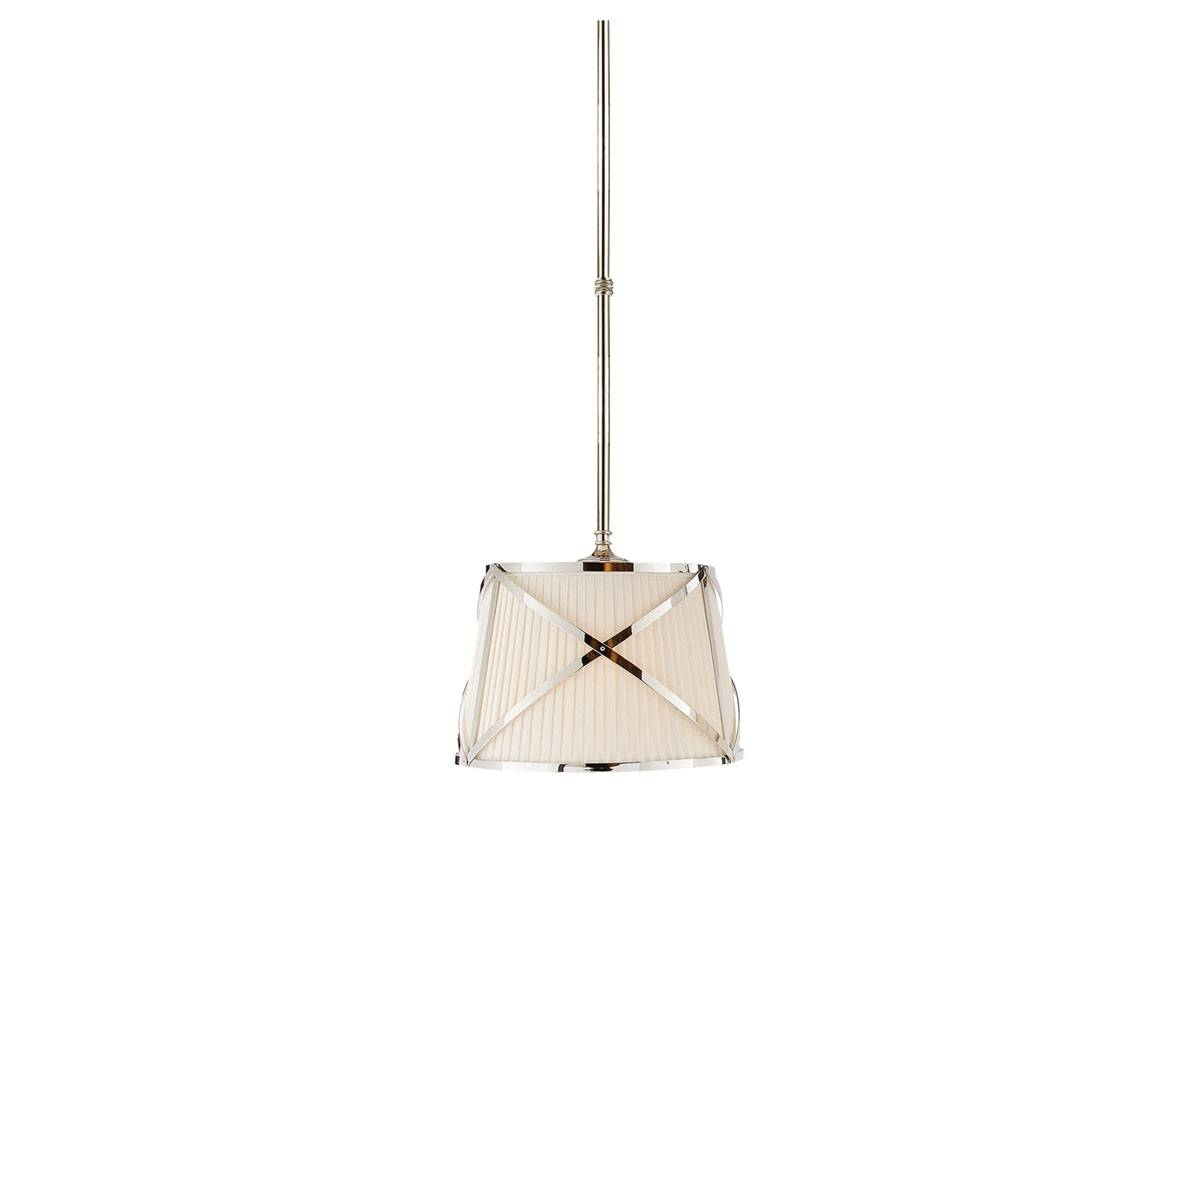 Visual Comfort Grosvenor Single Pendant, Pendant Fixture | Neenas with Grosvenor Lights Pendants (Image 15 of 15)